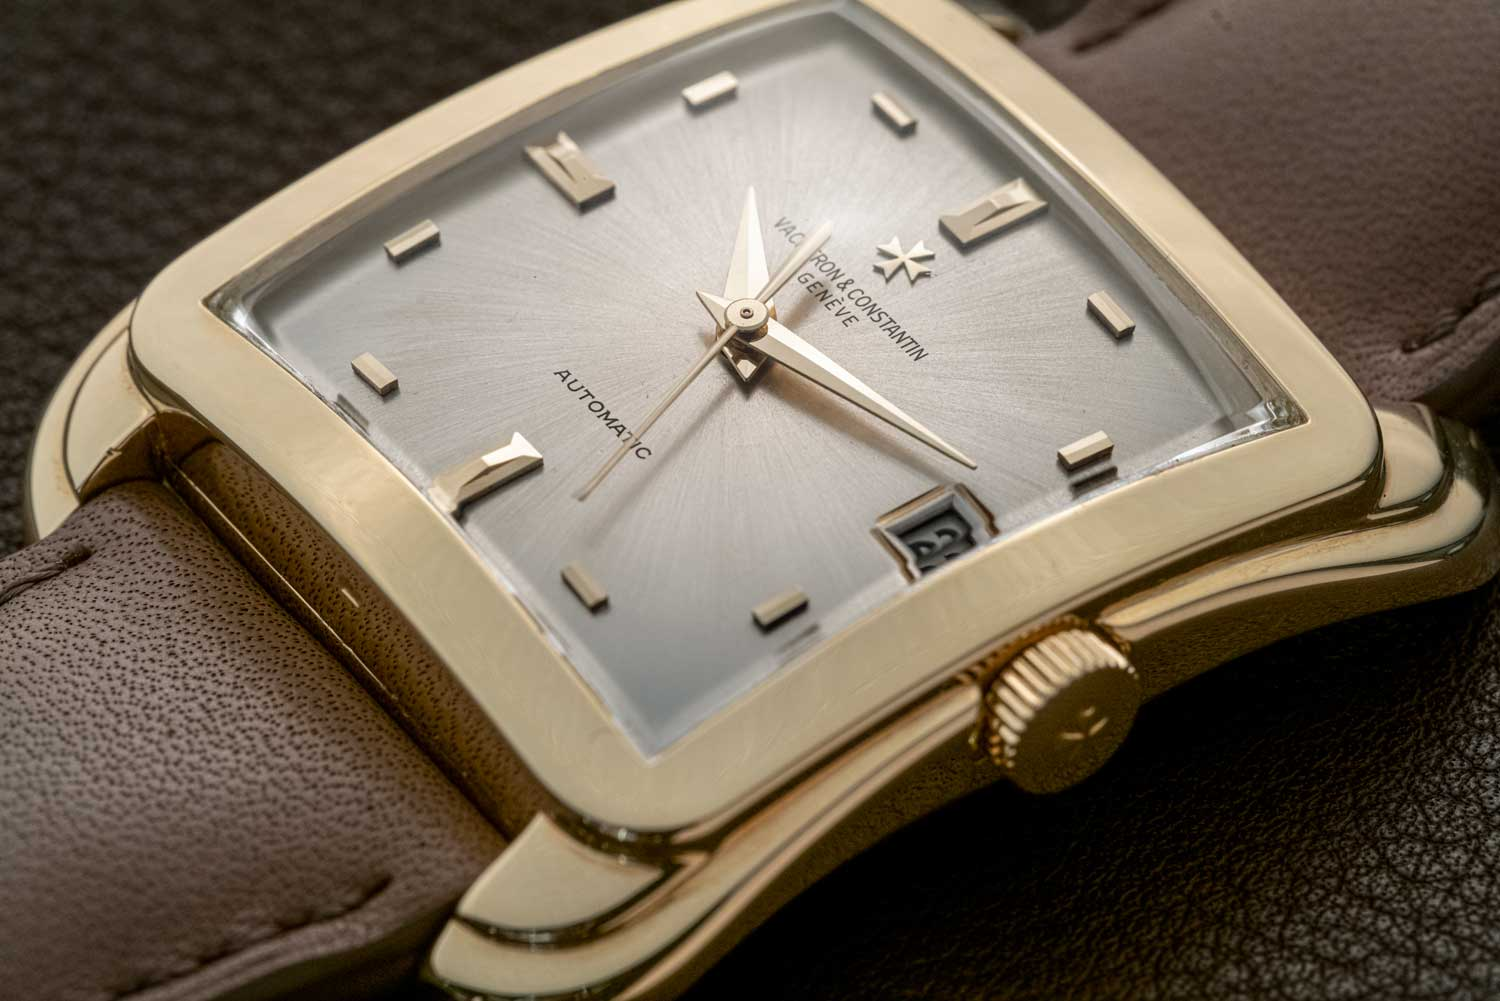 The Cioccolatone Reference 6440Q here has a highly appealing dial that consists of rectangular markers that are placed horizontally at 5 and 7, 11 and 1 and vertically at 2,4,8 and 10 creating a charming sense of juxtaposition (©Revolution)